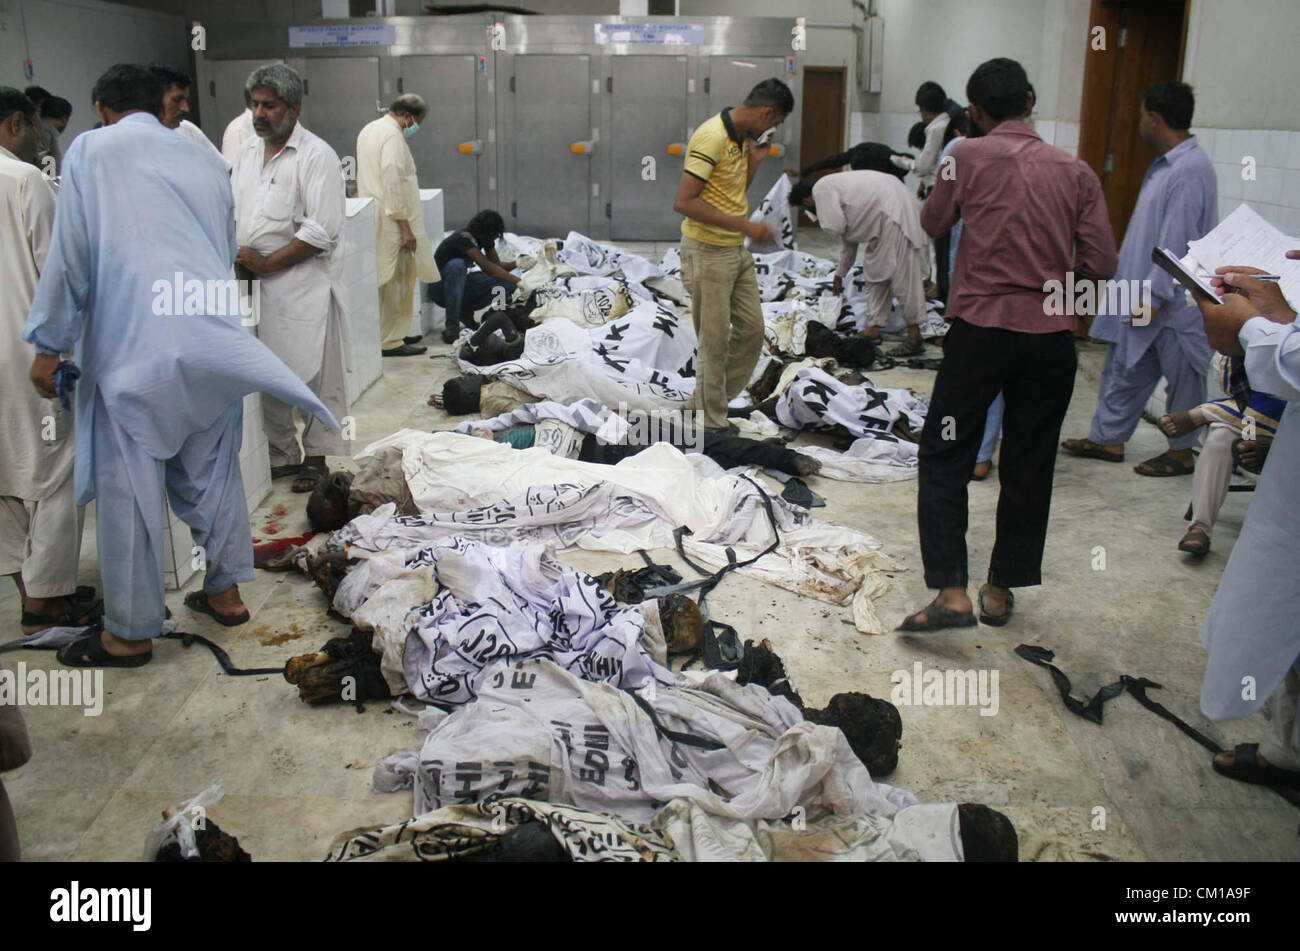 Karachi, Pakistan  SEP 12, 2012  Relatives searching dead bodies of